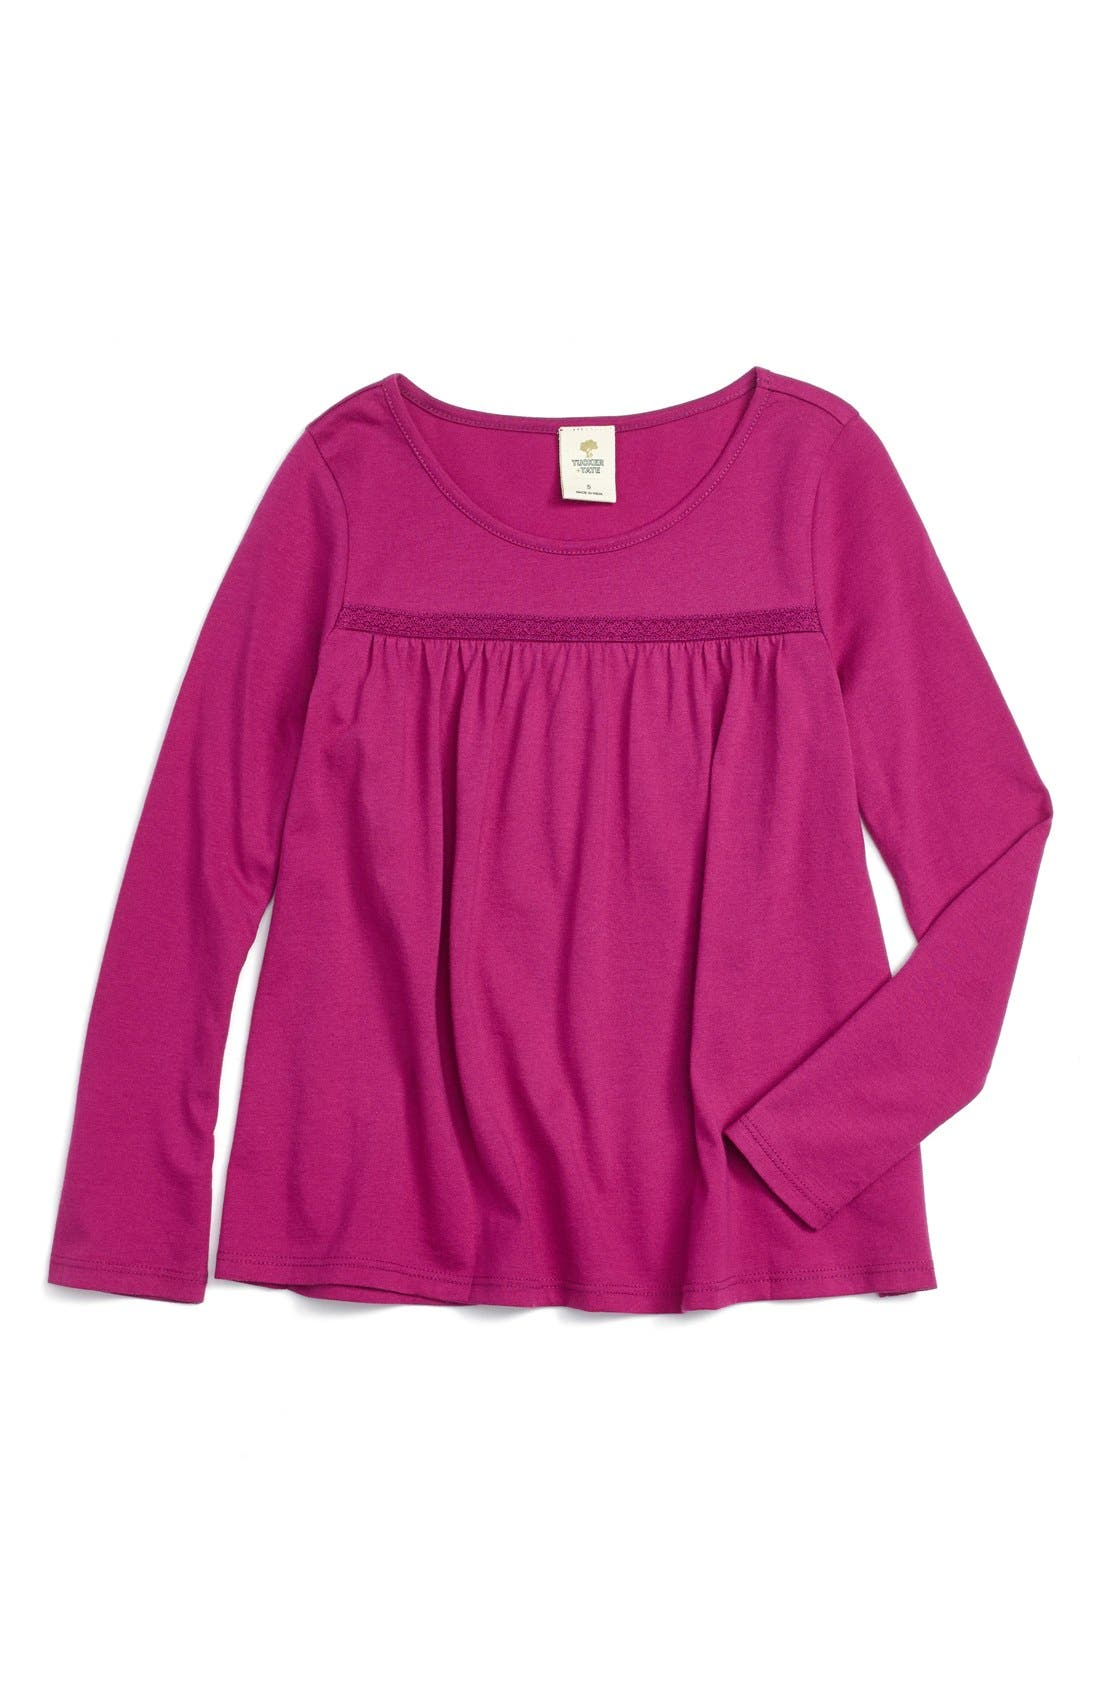 Main Image - Tucker + Tate 'Patty' Long Sleeve Tee (Toddler Girls, Little Girls & Big Girls)